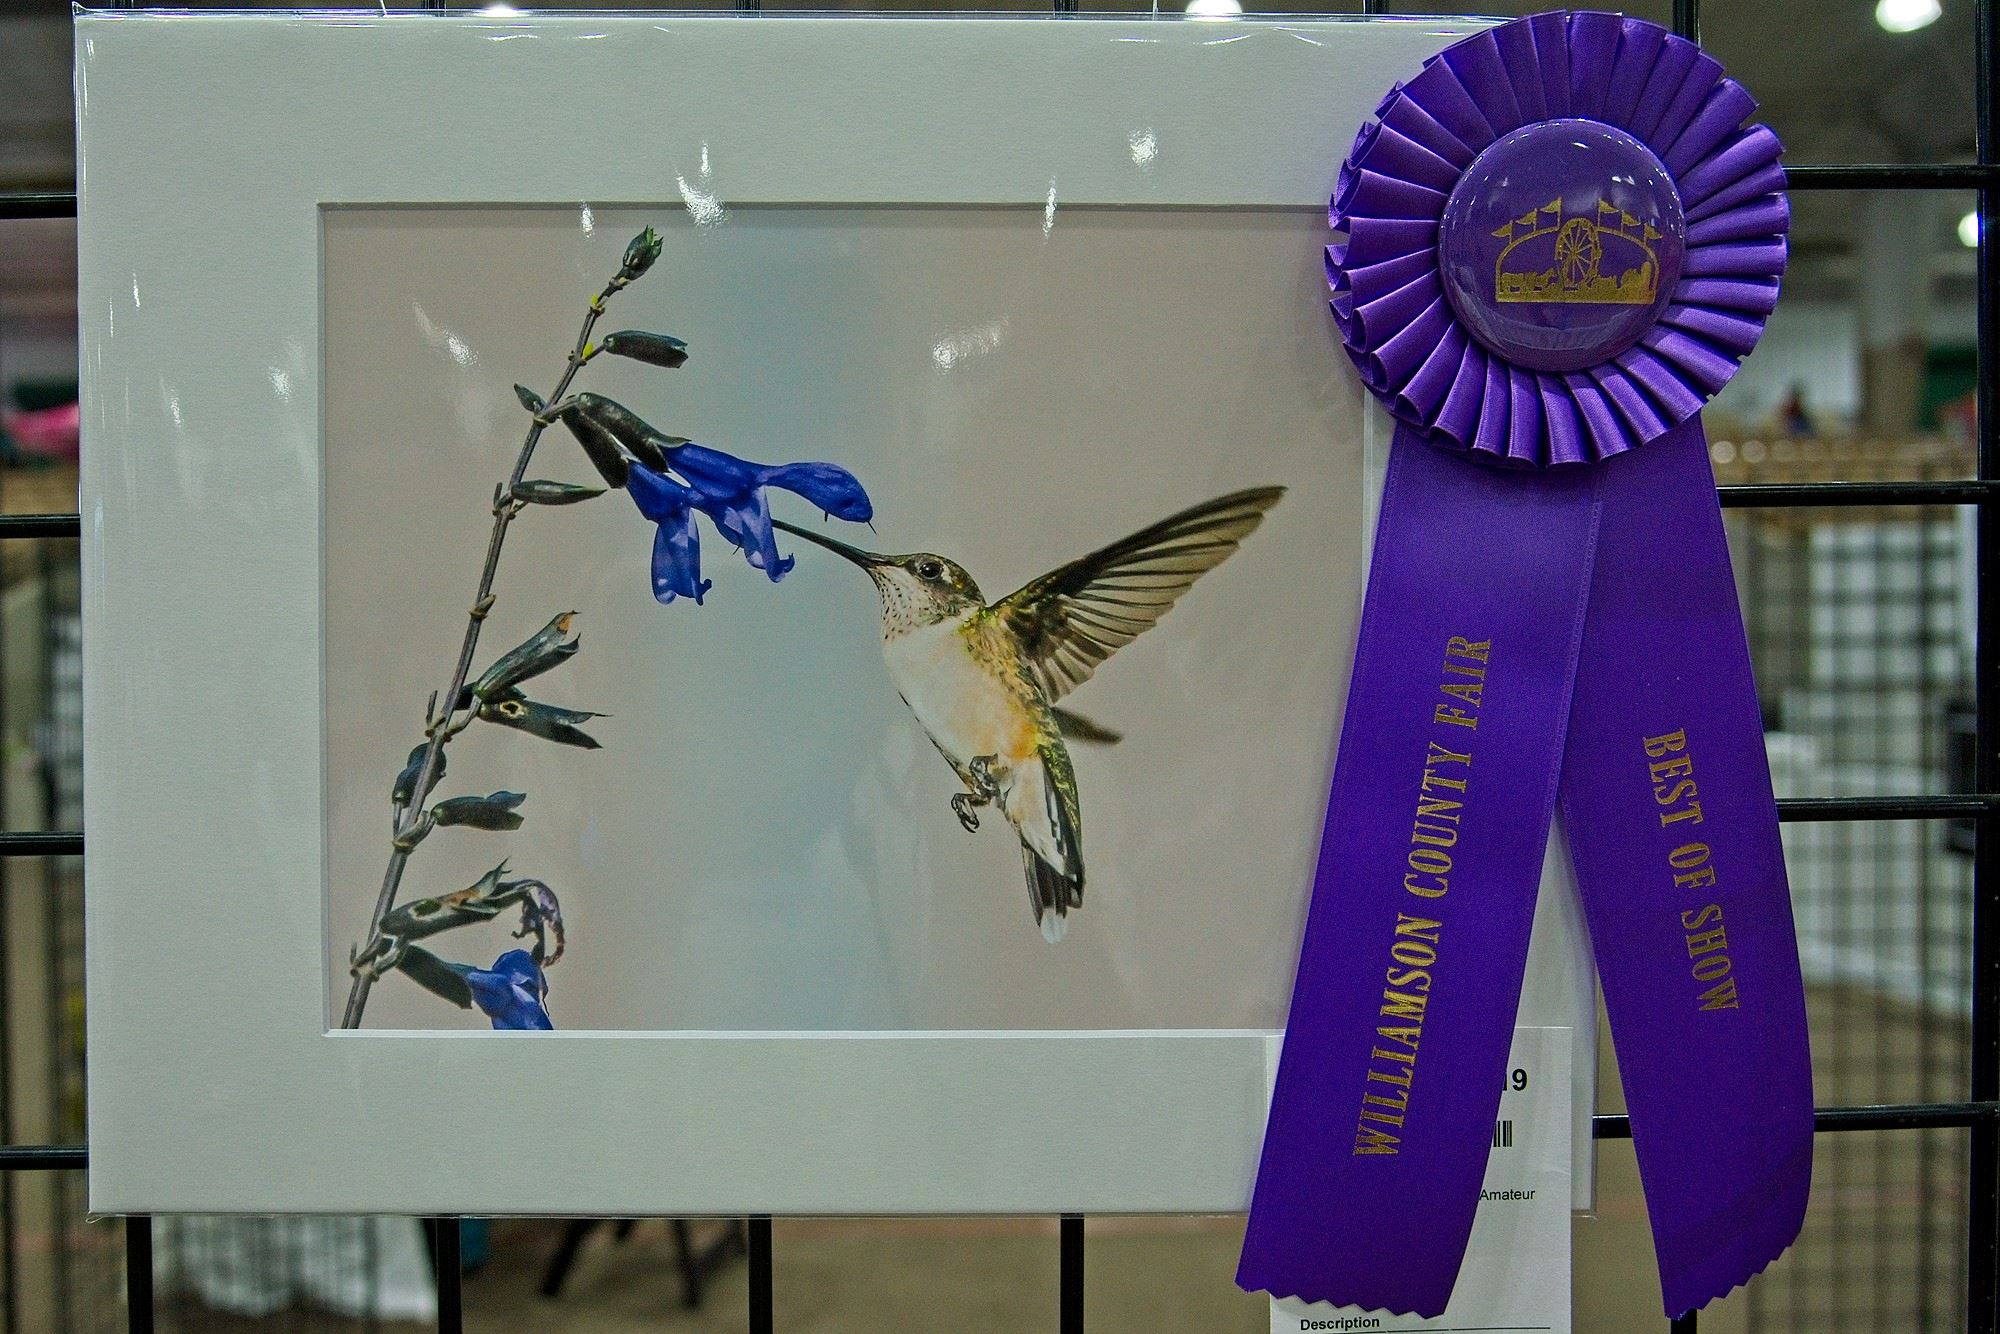 Best of Show photograph of a hummingbird with link to enter Cultural Arts divisions.